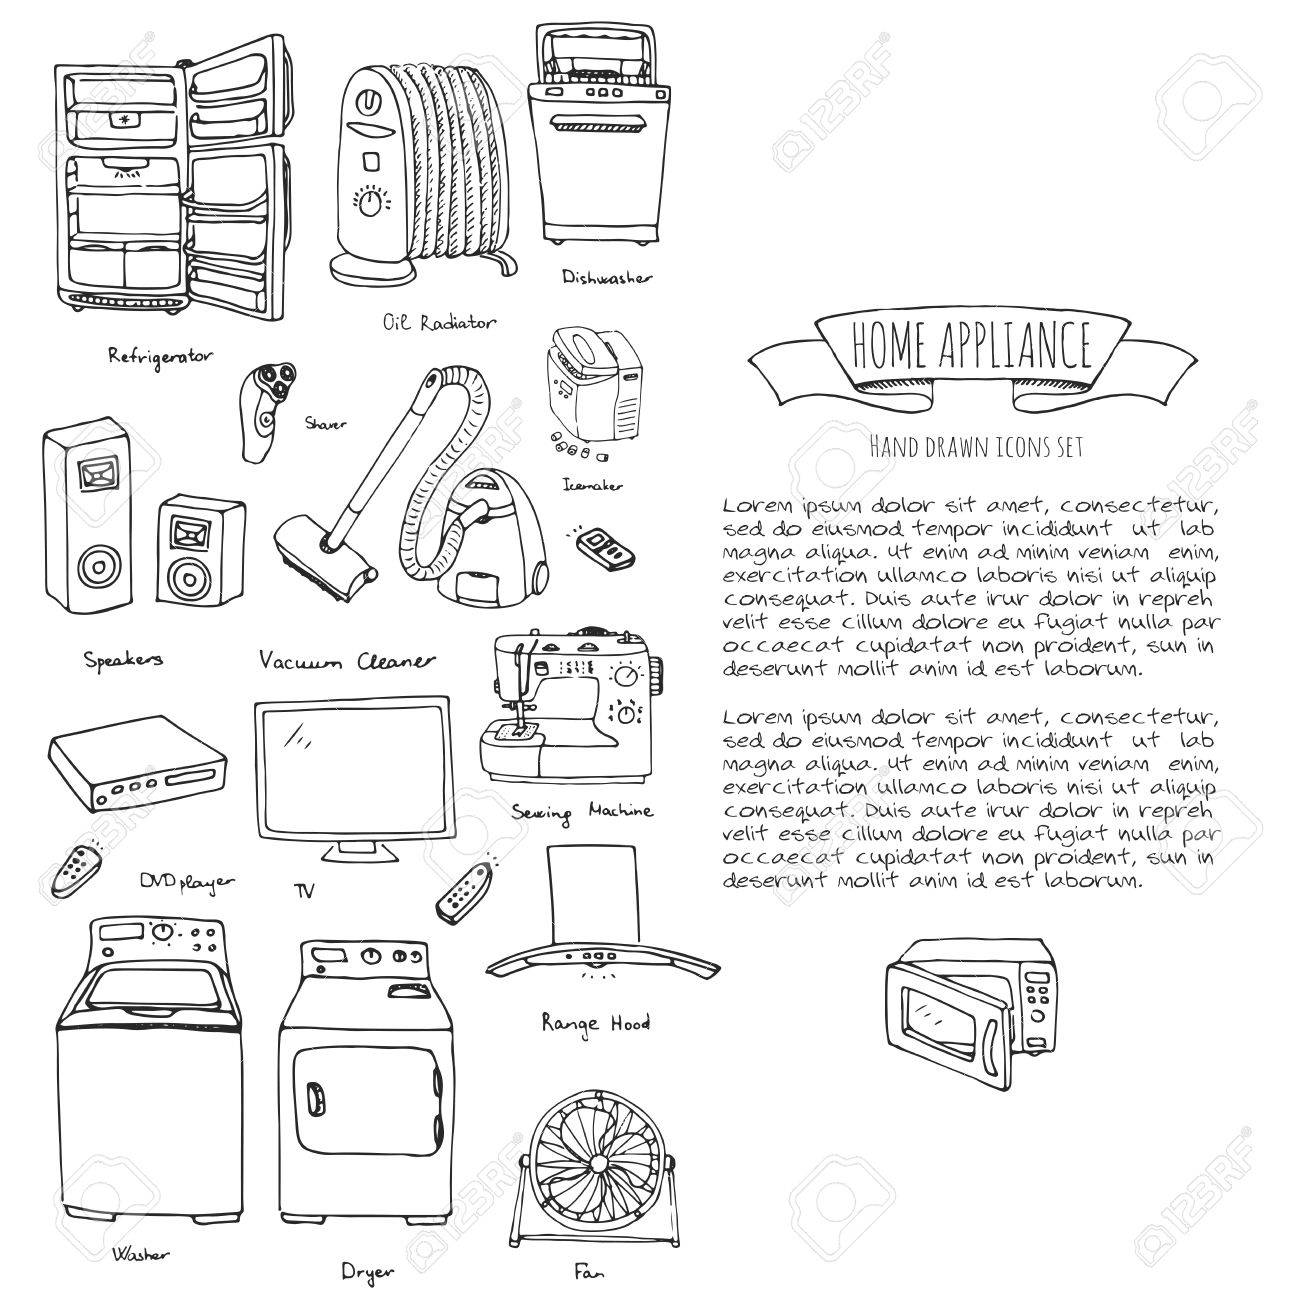 Hand Drawn Doodle Home Appliance Vector Illustration Cartoon Royalty Free Cliparts Vectors And Stock Illustration Image 72806075